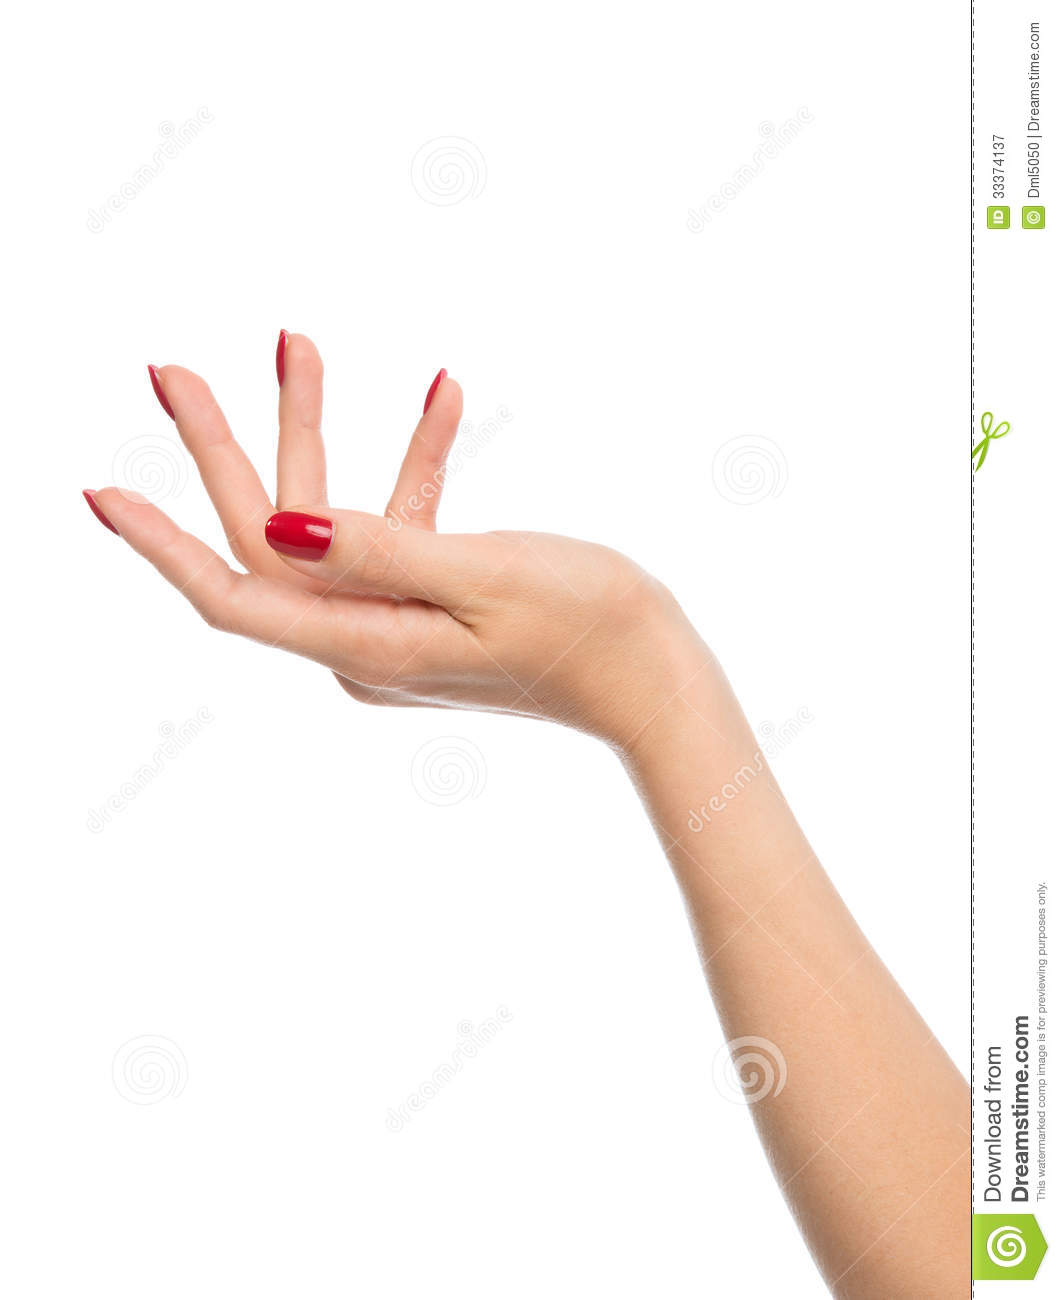 Free Manicure Beauty Hands Makeover: Female Hand With Red French Manicure Nails Royalty Free